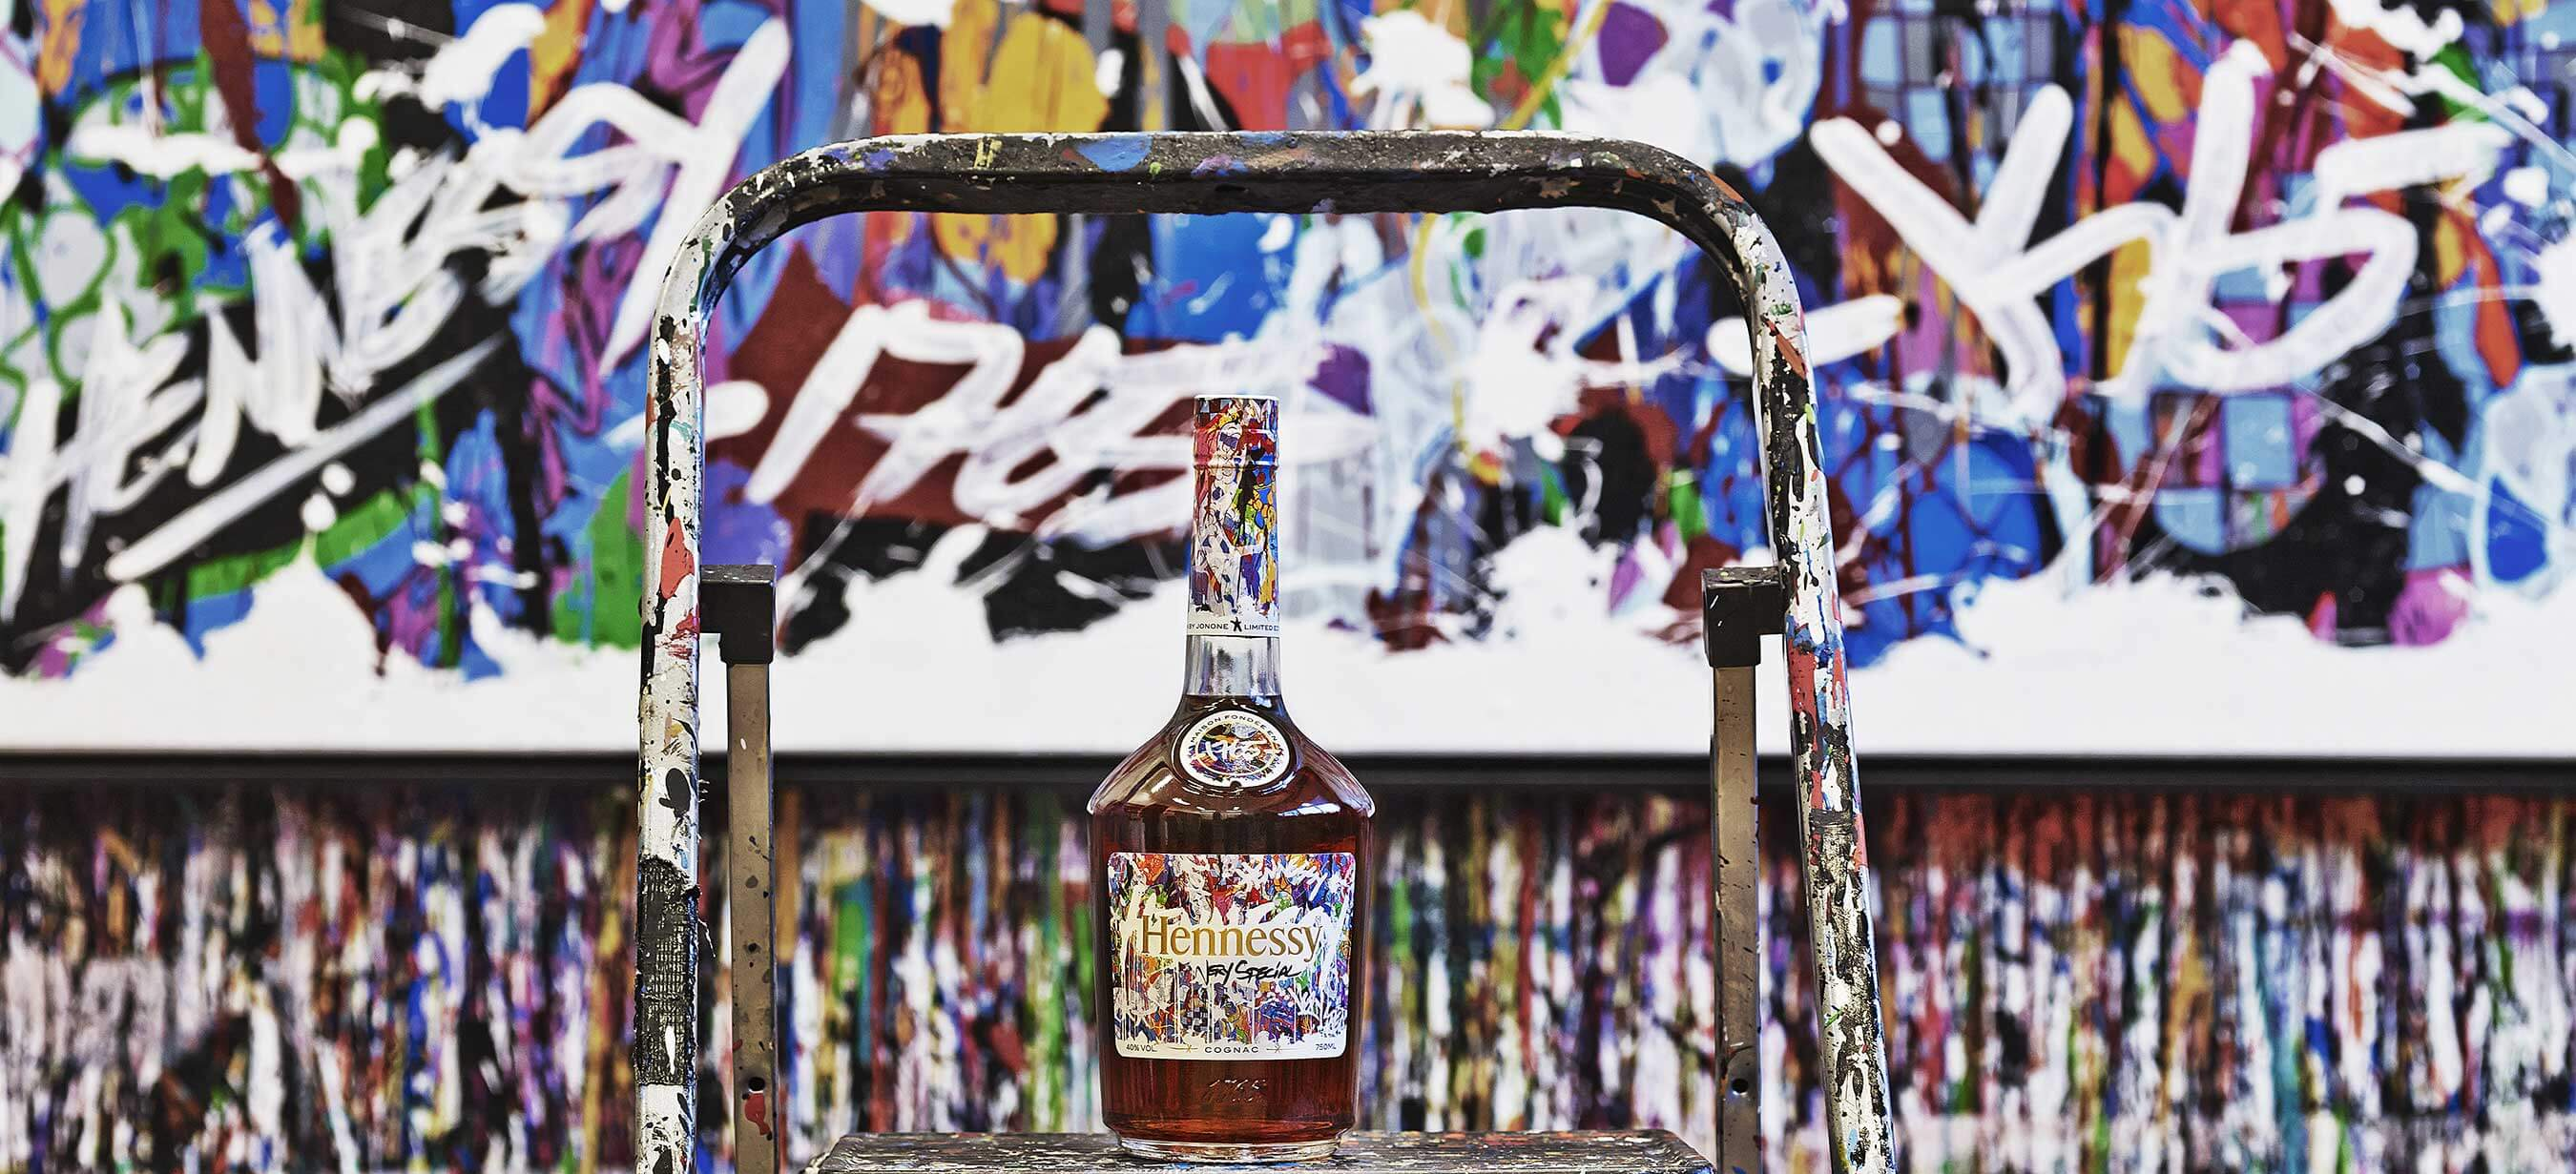 Hennessy 2017 Very Special Limited Edition bottle designed by artist JonOne - What's Shakin' week of June 26